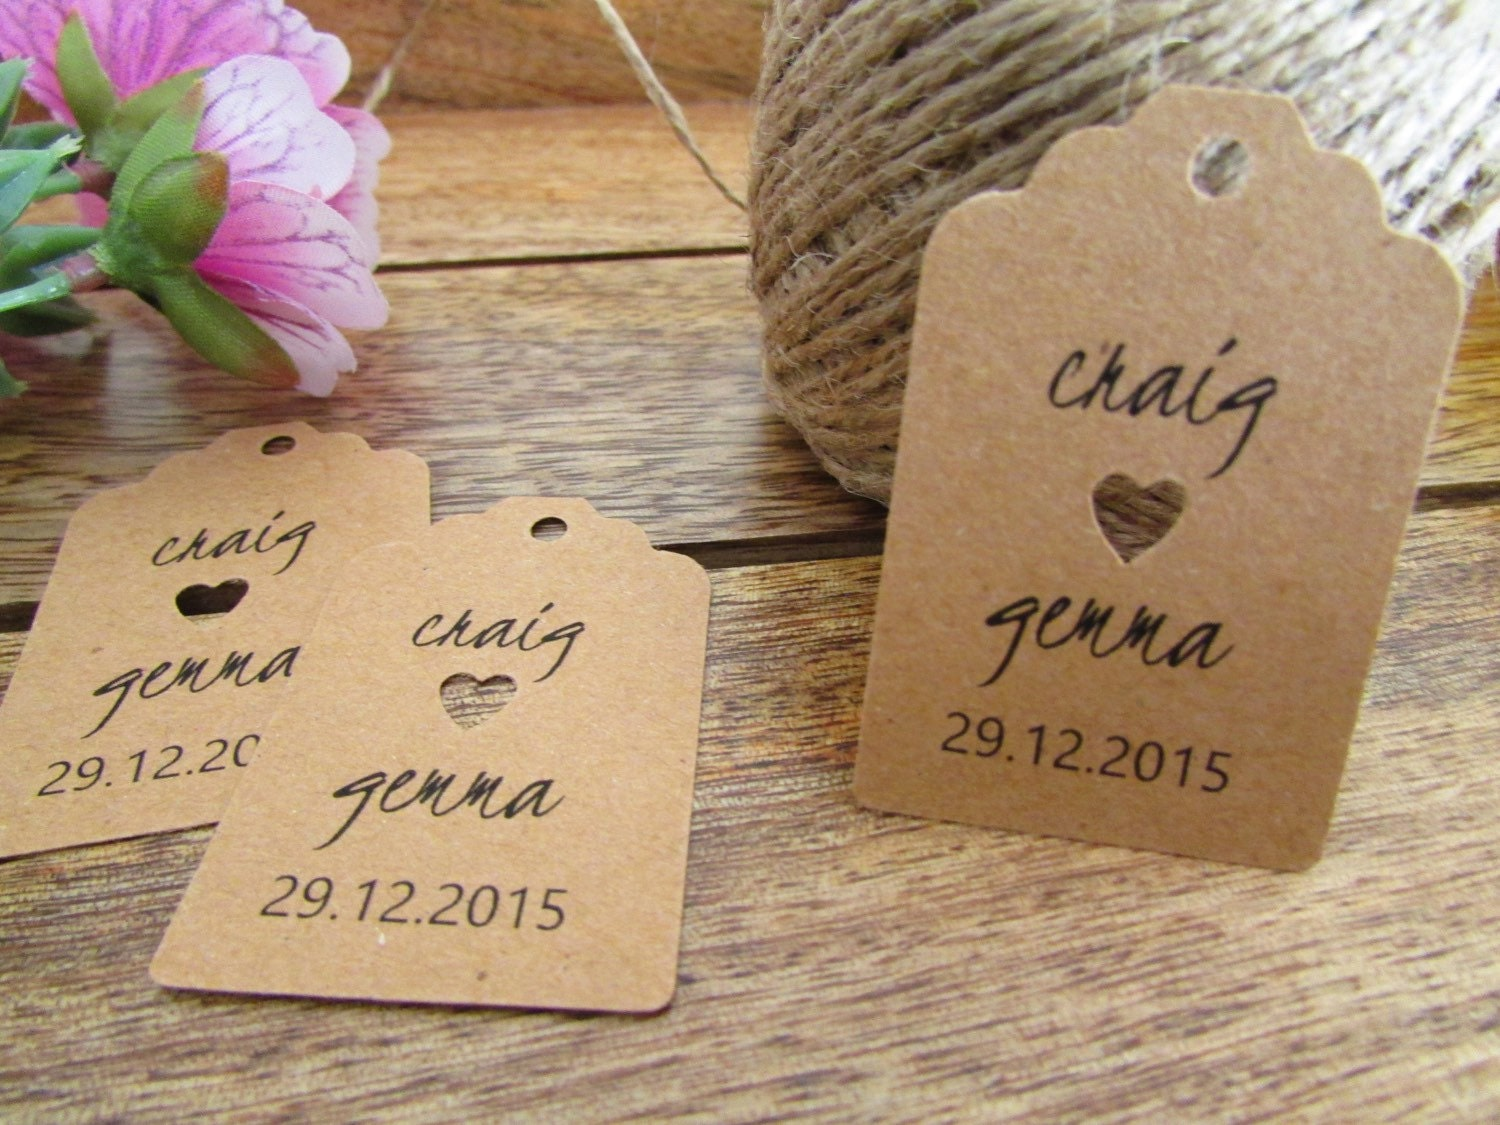 Wedding Gift Tags Suggestions : Wedding Favor Tags Personalized Favor Tags Shower Gift